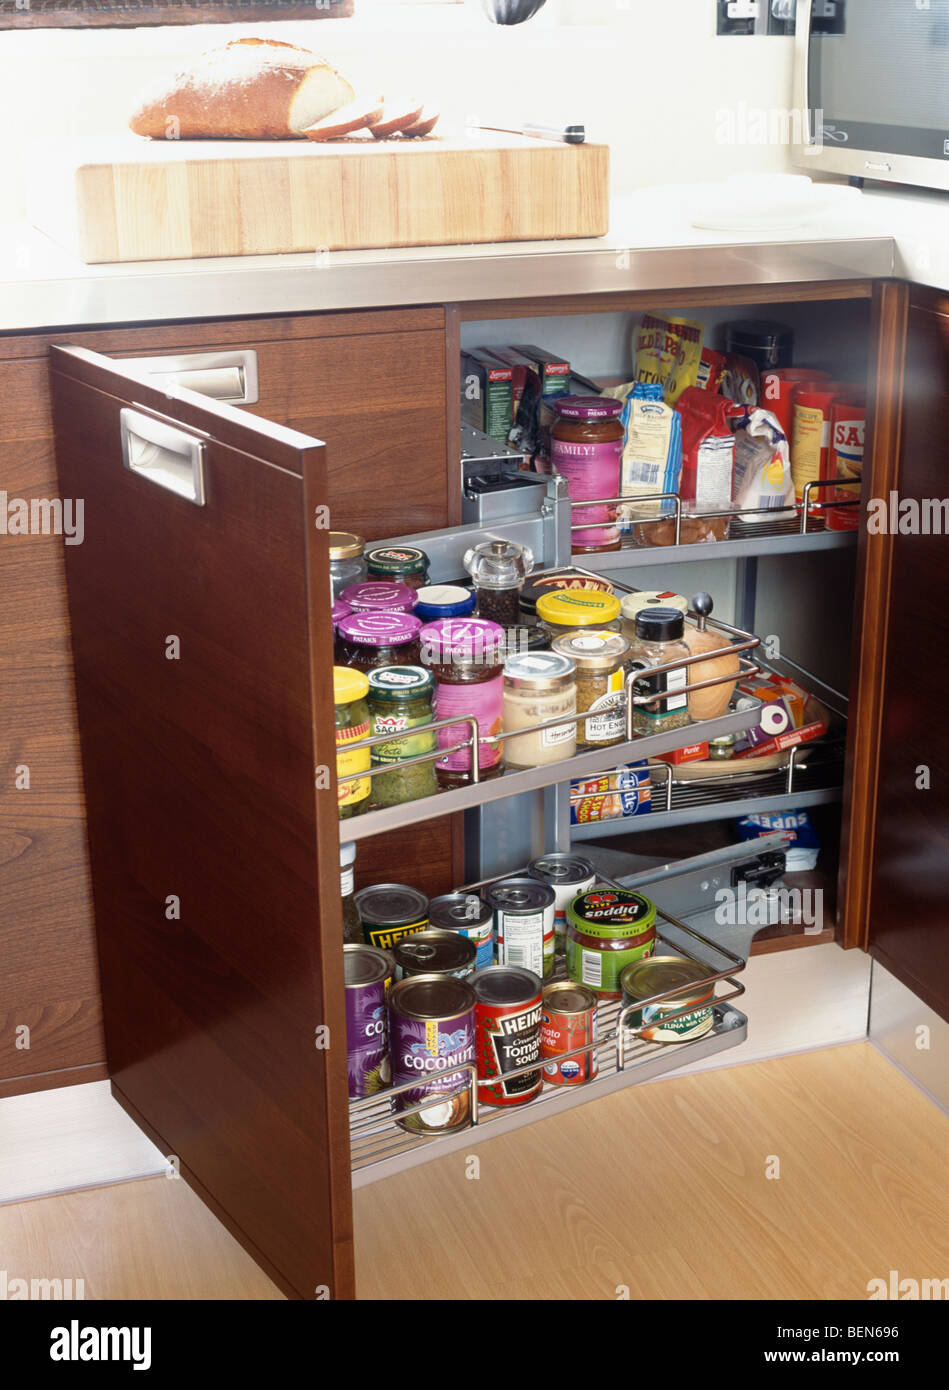 Close-up of cupboard with doors open to show jars and tins on pull-out storage shelves in modern kitchen - Stock Image